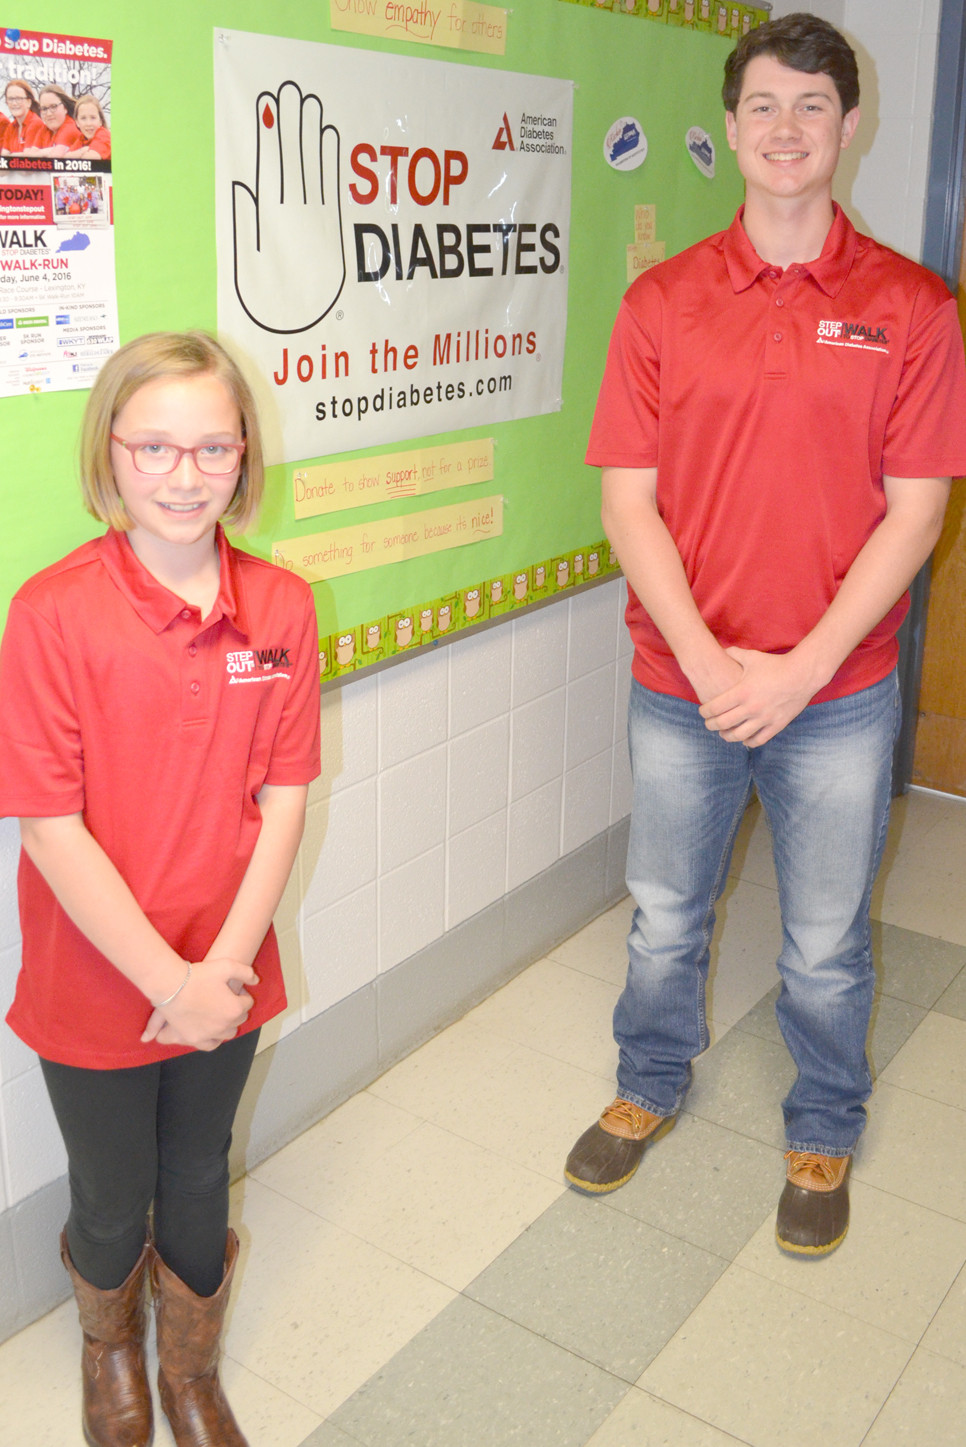 MADDY CAMPBELL and Parker Thomas are youth ambassadors for the American Diabetes Association. Their teams will participate in the annual Step Out: Walk to Stop Diabetes on Saturday, June 4, at the Keeneland Race Course on Versailles Road in Lexington. (Photo by Bob Vlach)